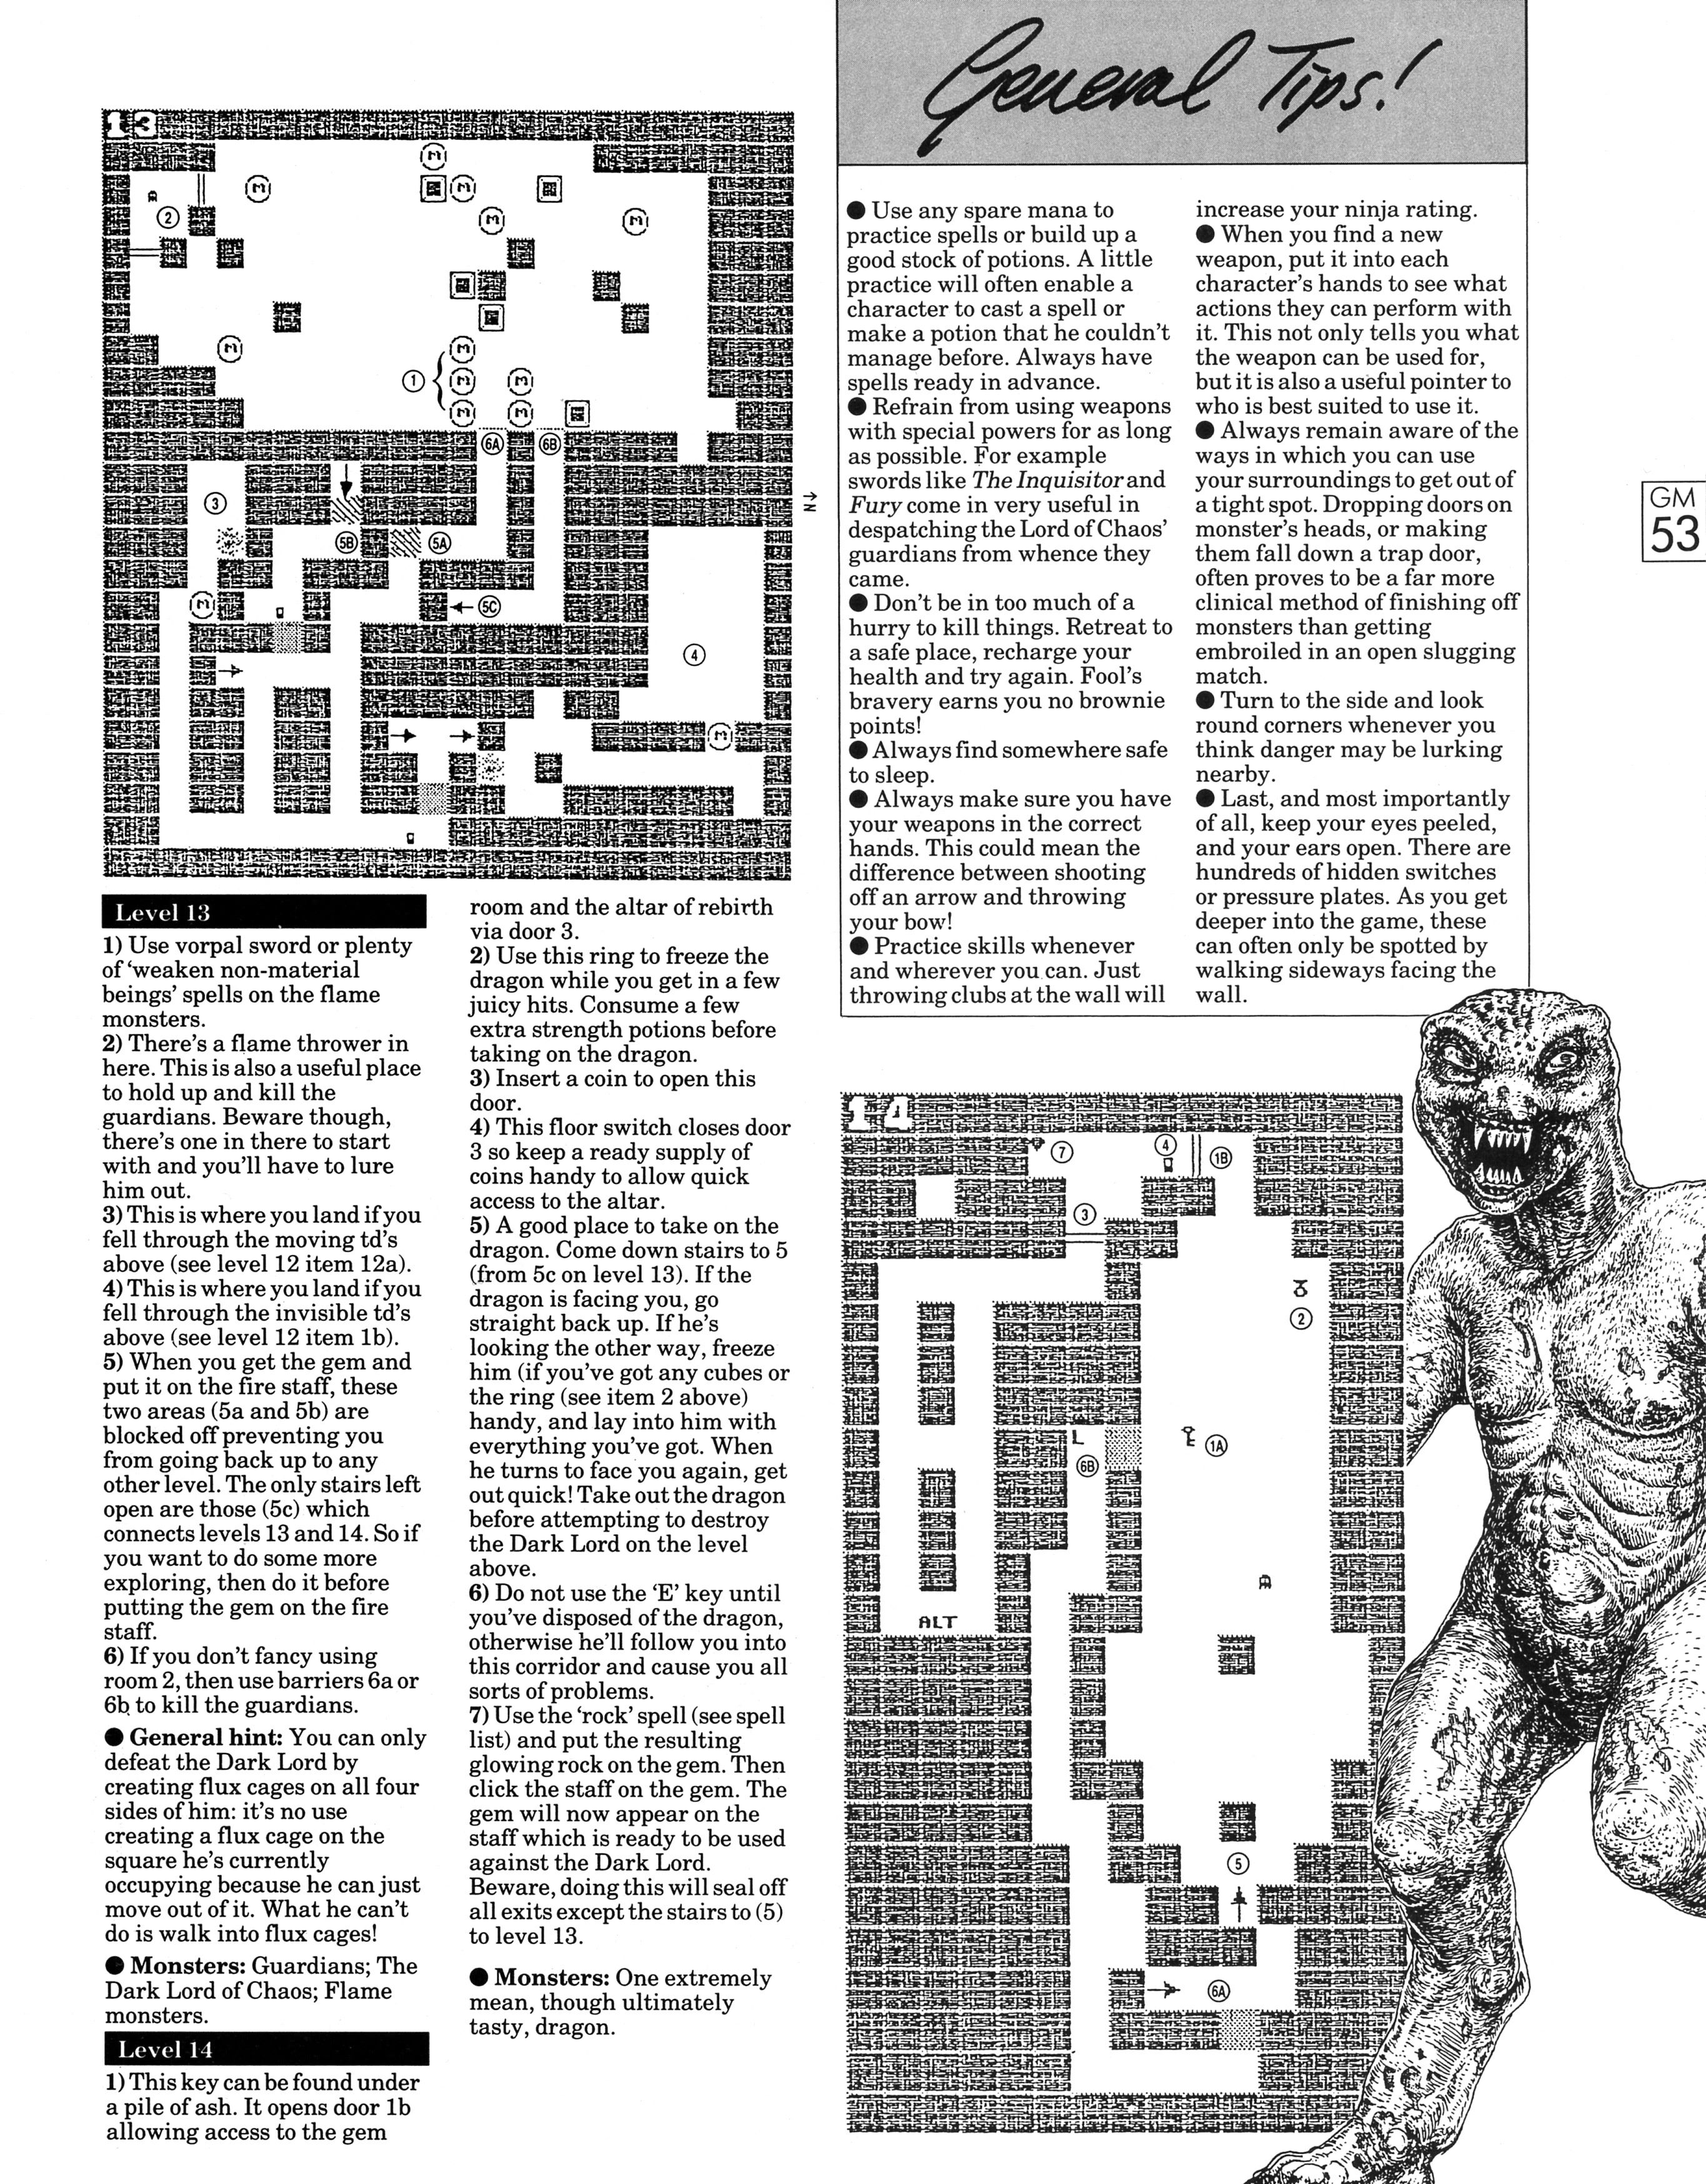 Dungeon Master Guide published in British magazine 'Game Master', Vol 1 No 3 November 1988, Page 53